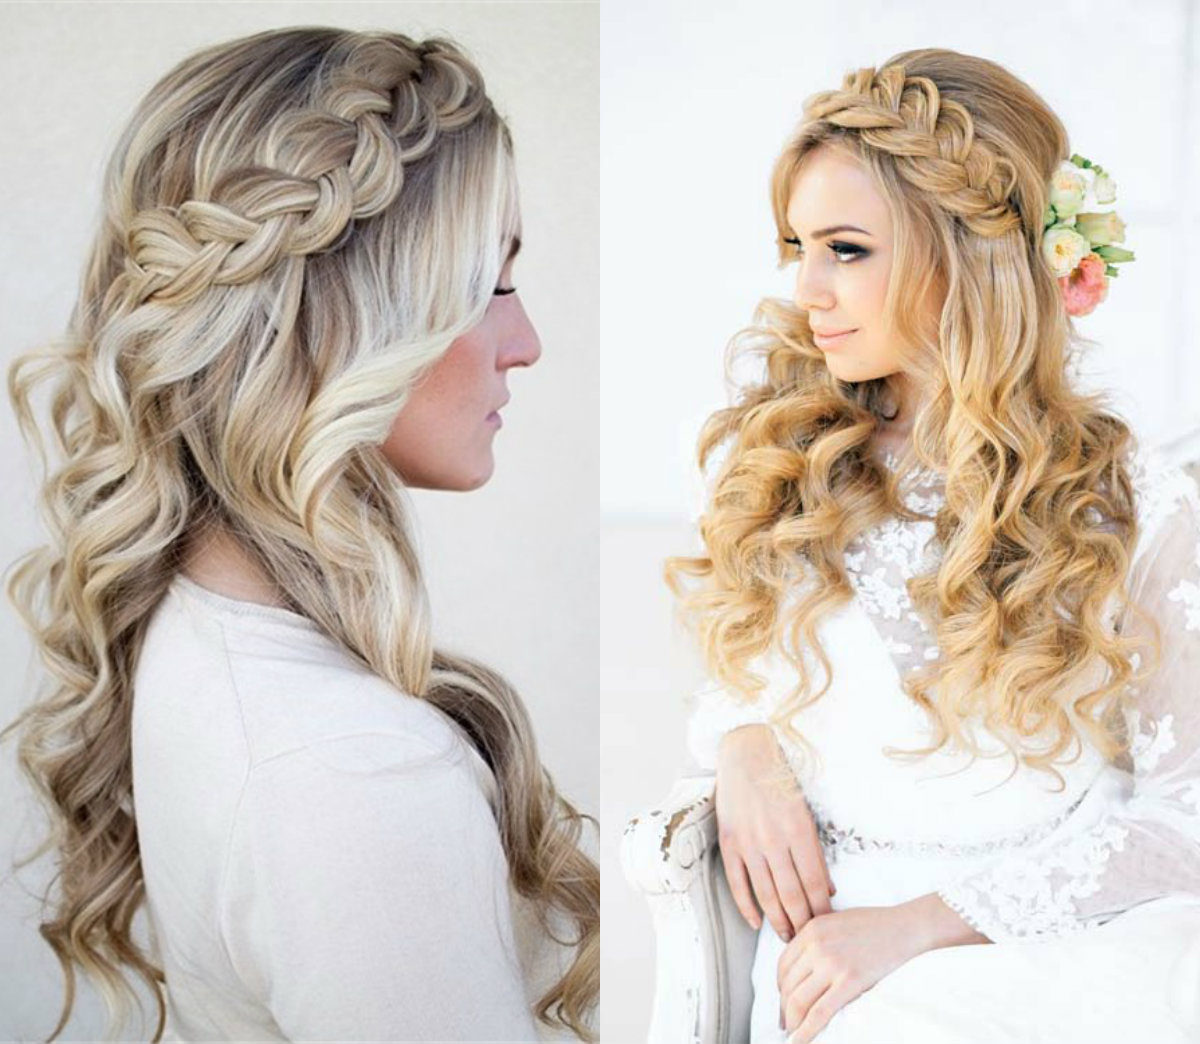 Medium Half Up Hairstyles – Hairstyle For Women & Man Intended For Well Liked Medium Hairstyles Half Up (View 11 of 20)